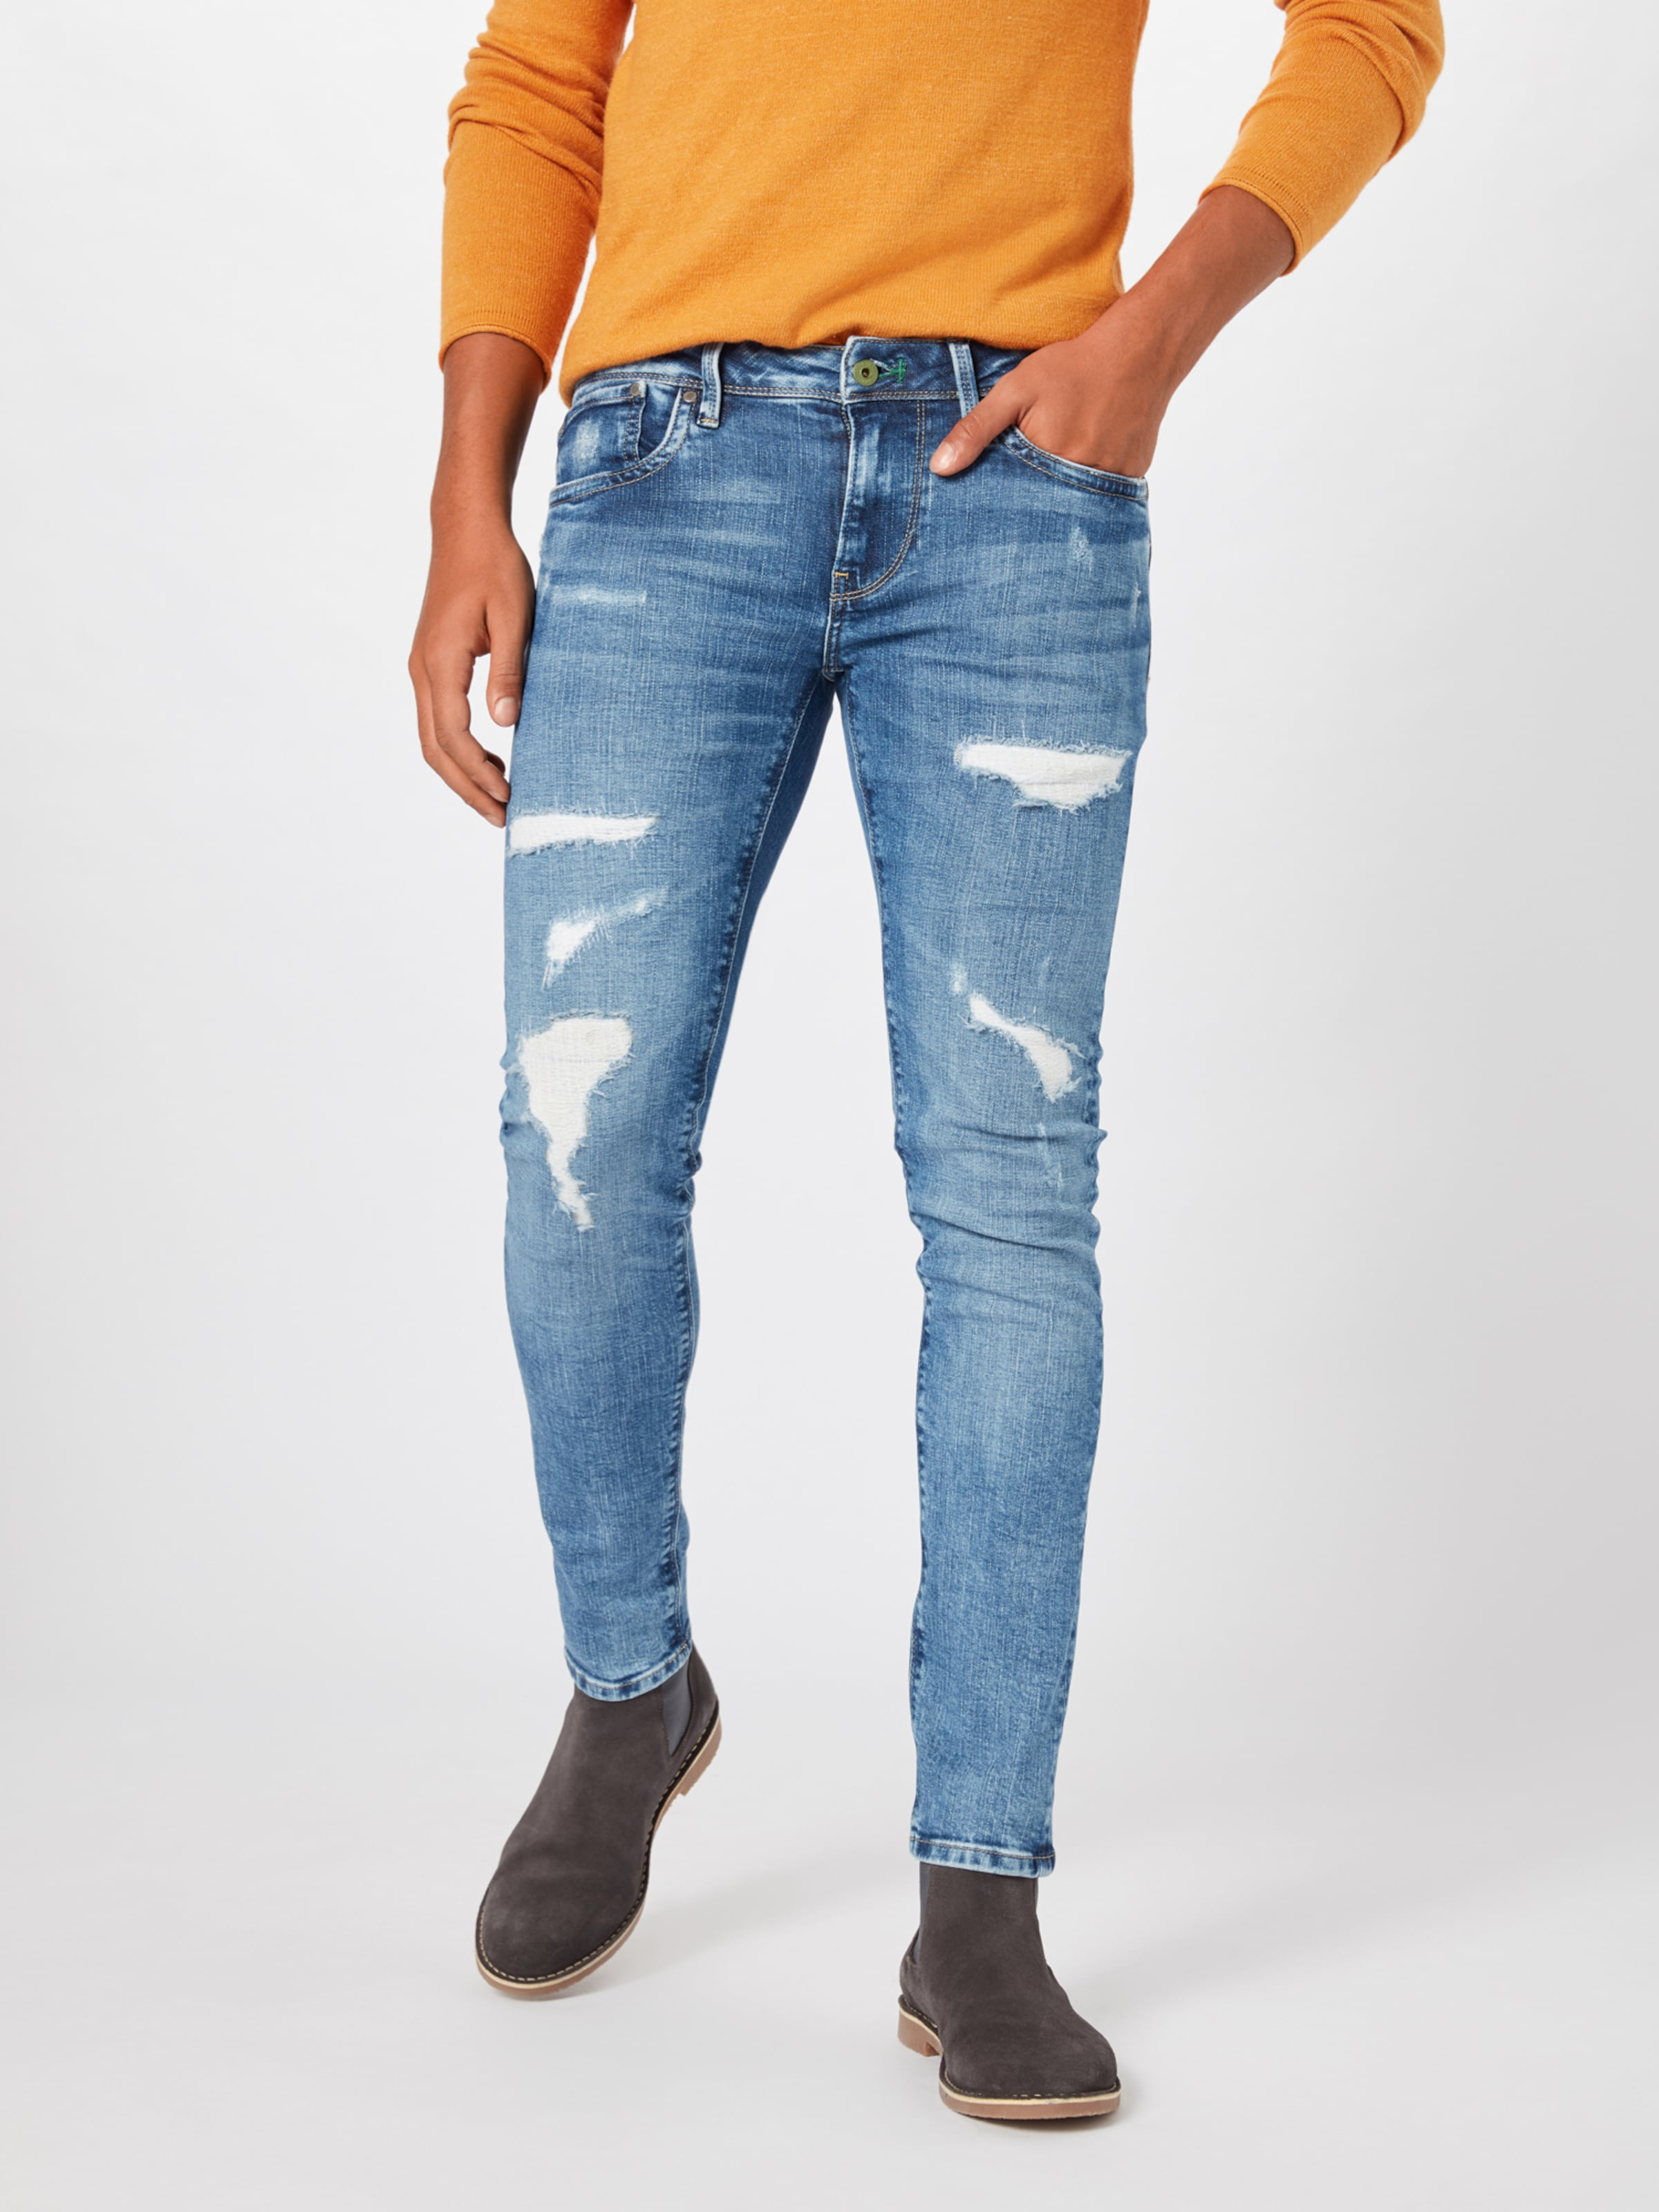 Pepe Denim Blue Jeans In 'hatch' b76gfvYy